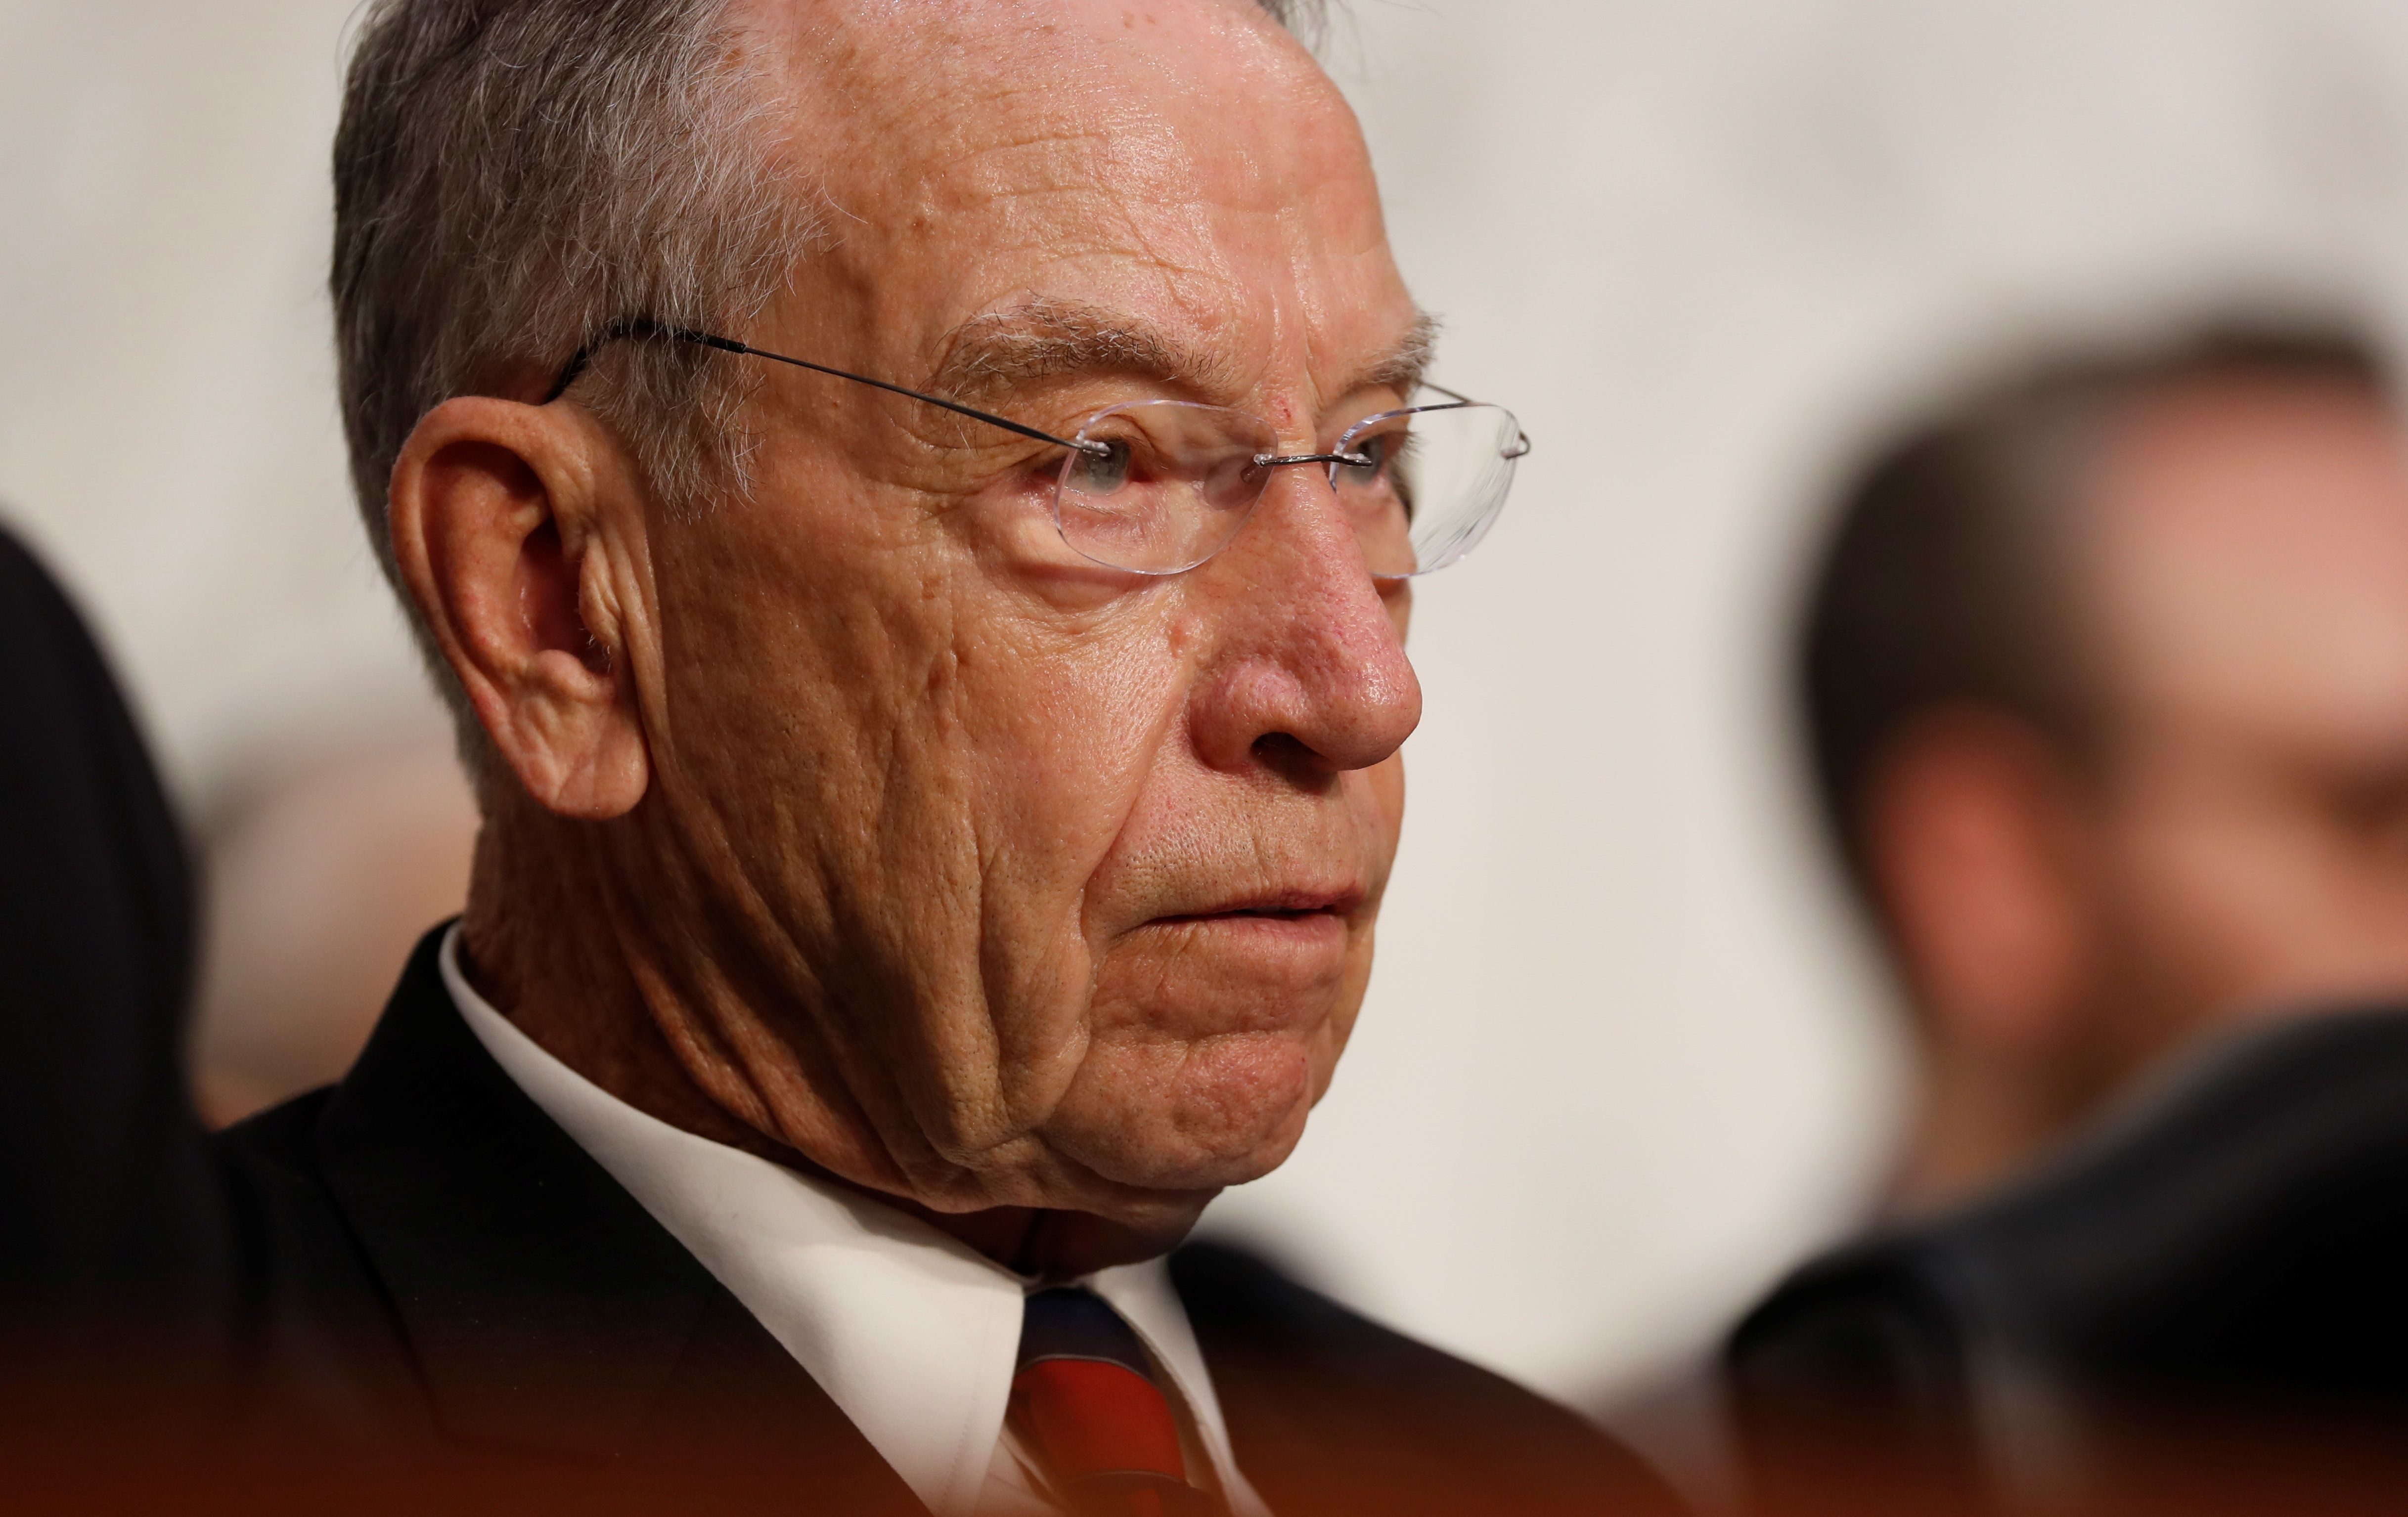 U.S. Senator Chuck Grassley (R-IA) listens during U.S. Supreme Court nominee Judge Brett Kavanaugh's U.S. Senate Judiciary Committee confirmation hearing on Capitol Hill in Washington, U.S., September 4, 2018. REUTERS/Joshua Roberts